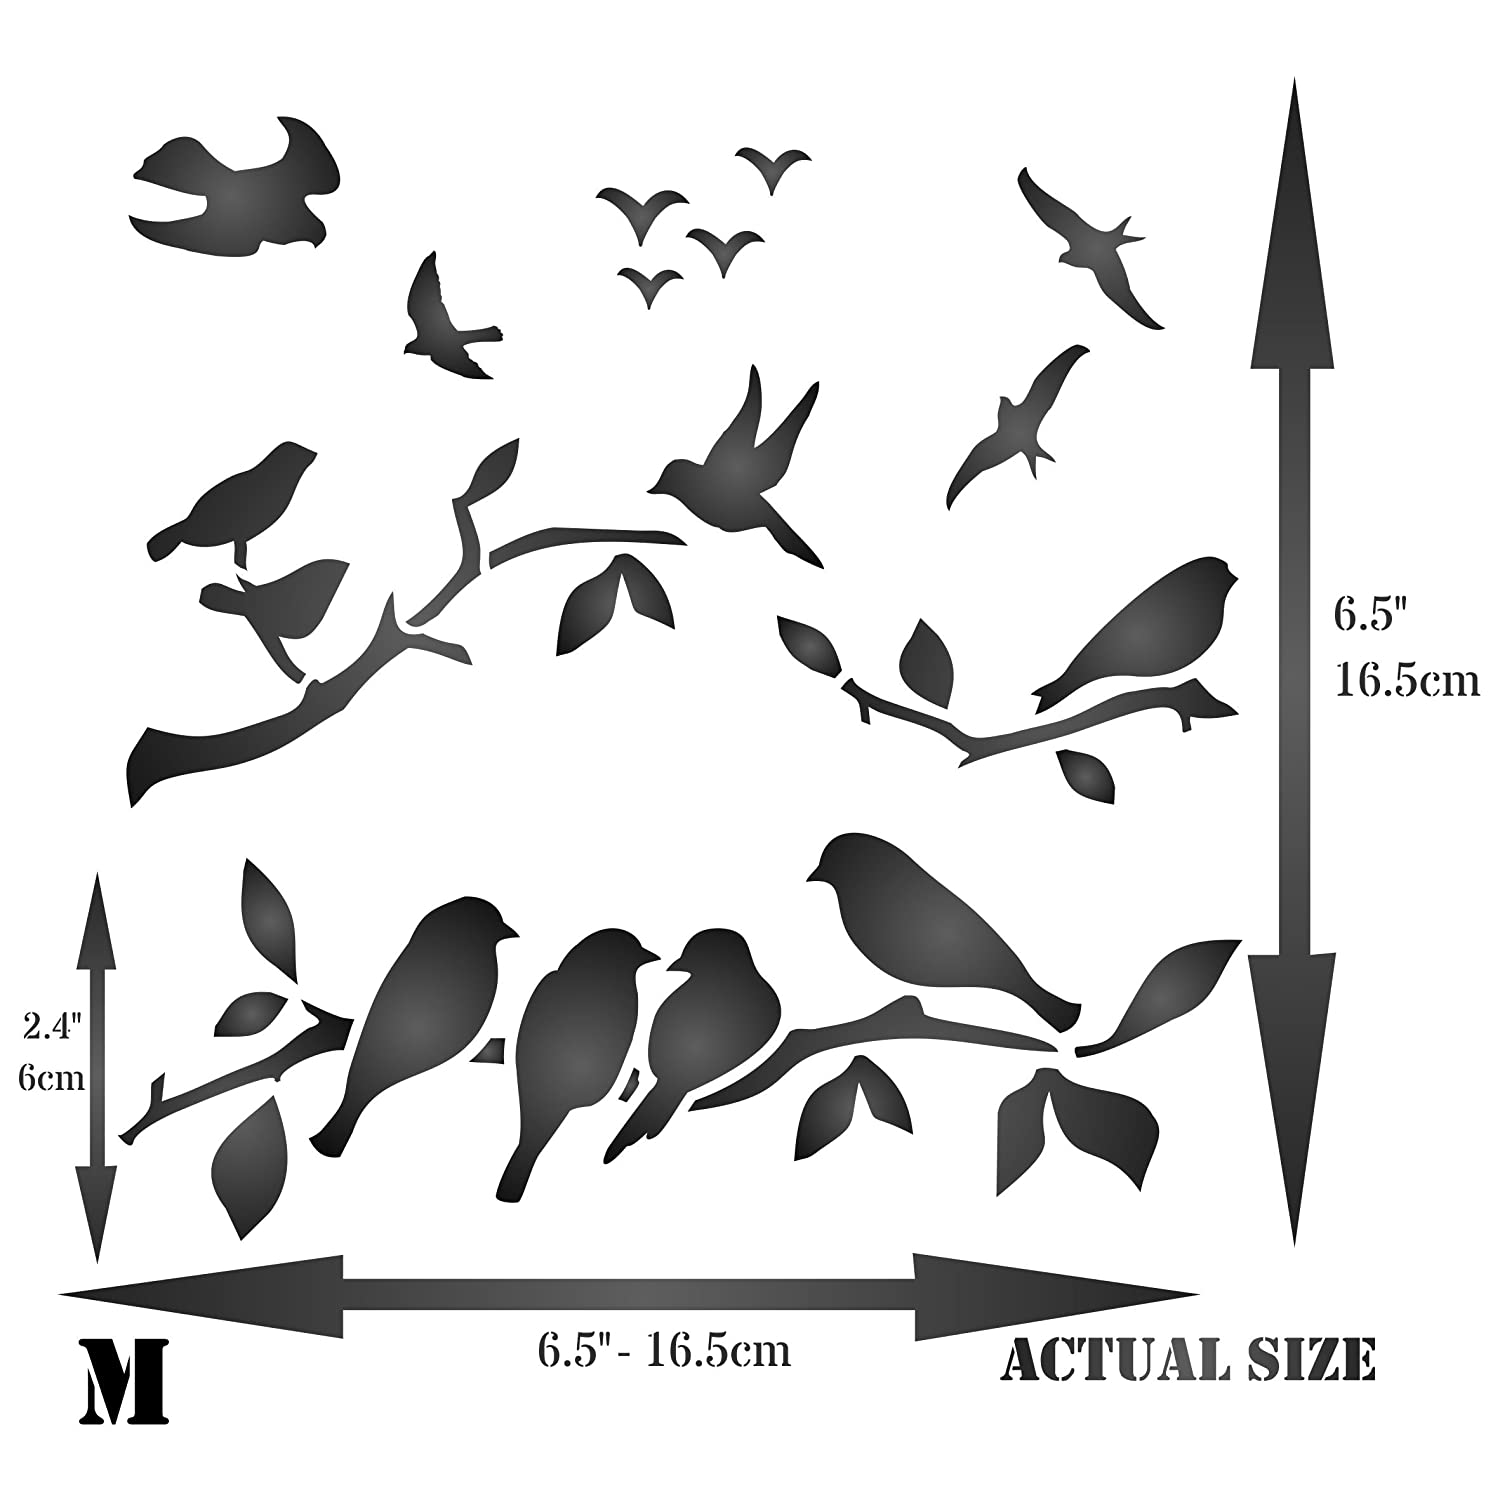 627251ea5a99c1 Amazon.com: Birds on Branches Stencil - 6.5 x 6.5 inch (M) - Reusable Bird  Branch Silhouette Stencils for Painting - Use on Walls, Floors, Fabrics,  Glass, ...